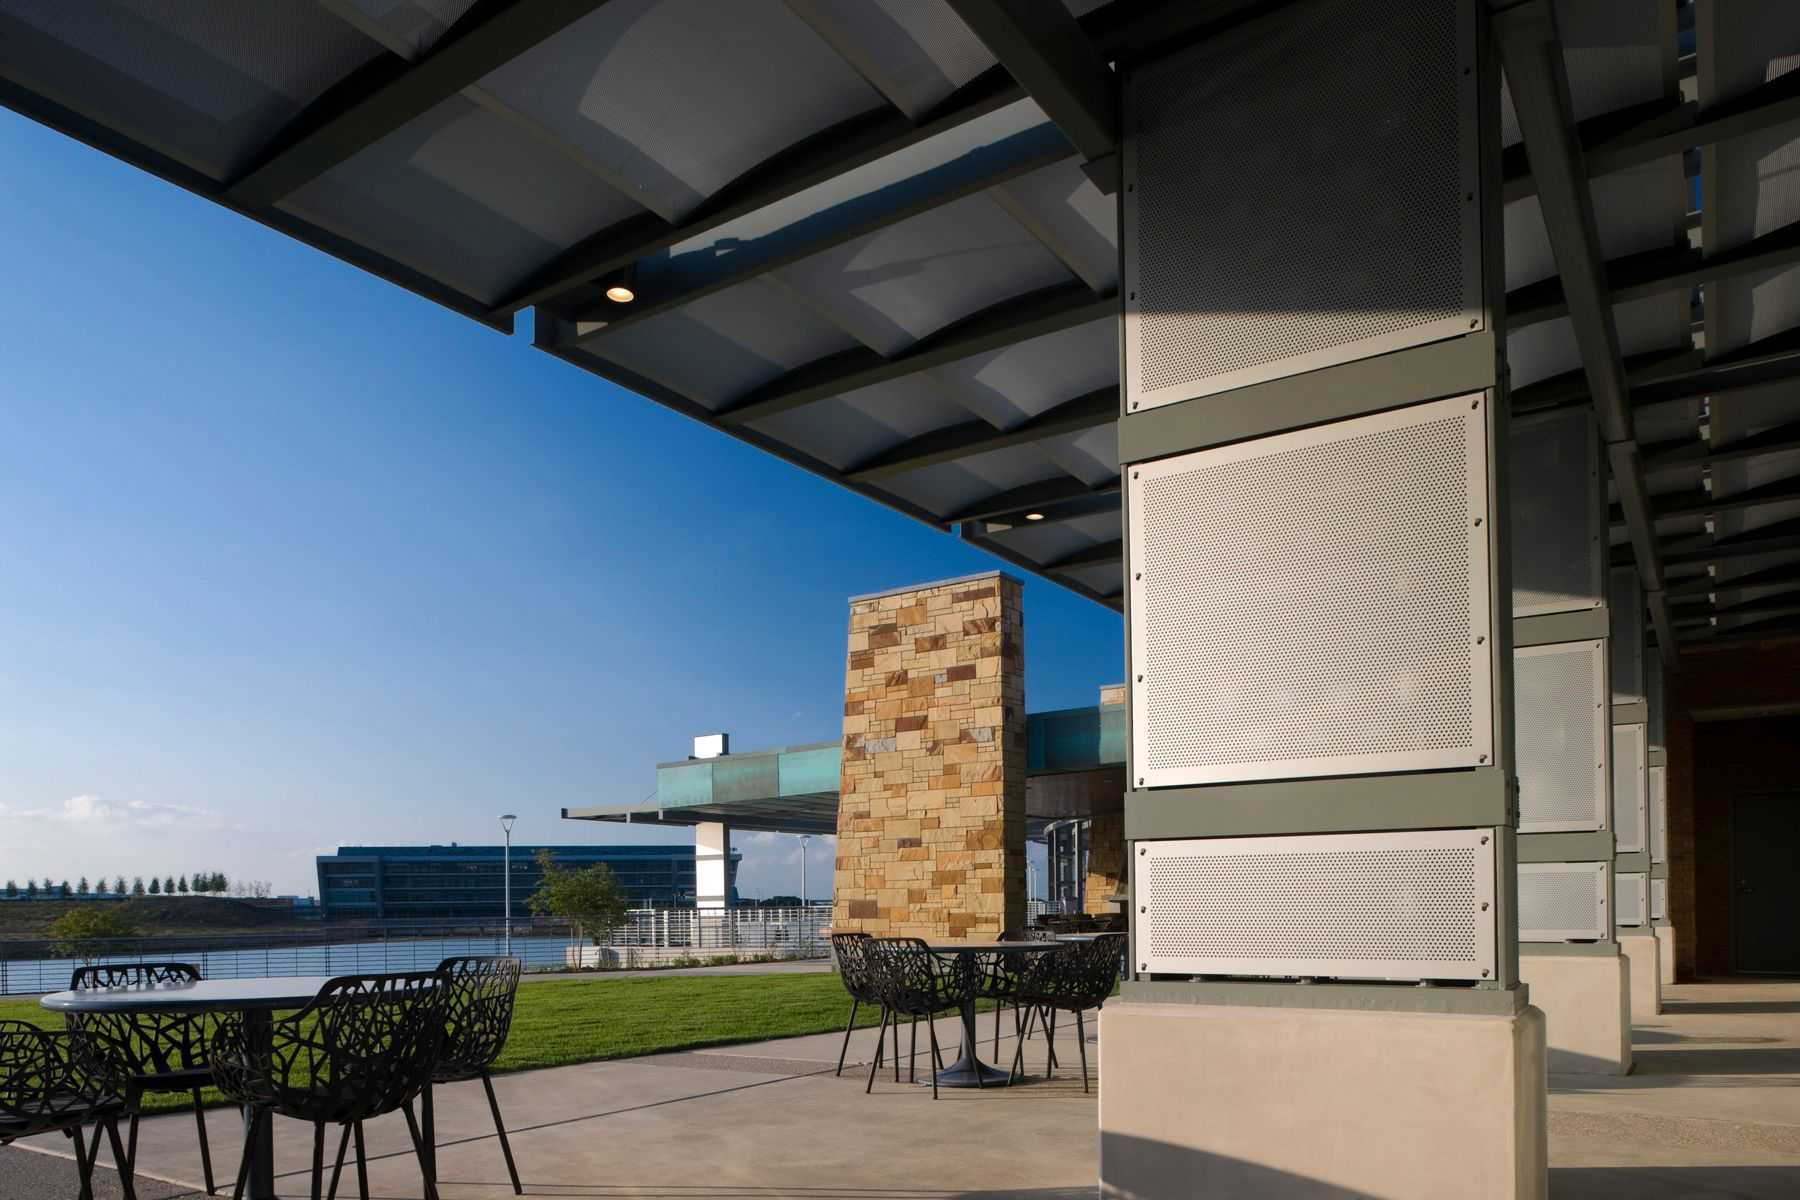 McNICHOLS® Perforated Metal being utilized at The Summit activity center